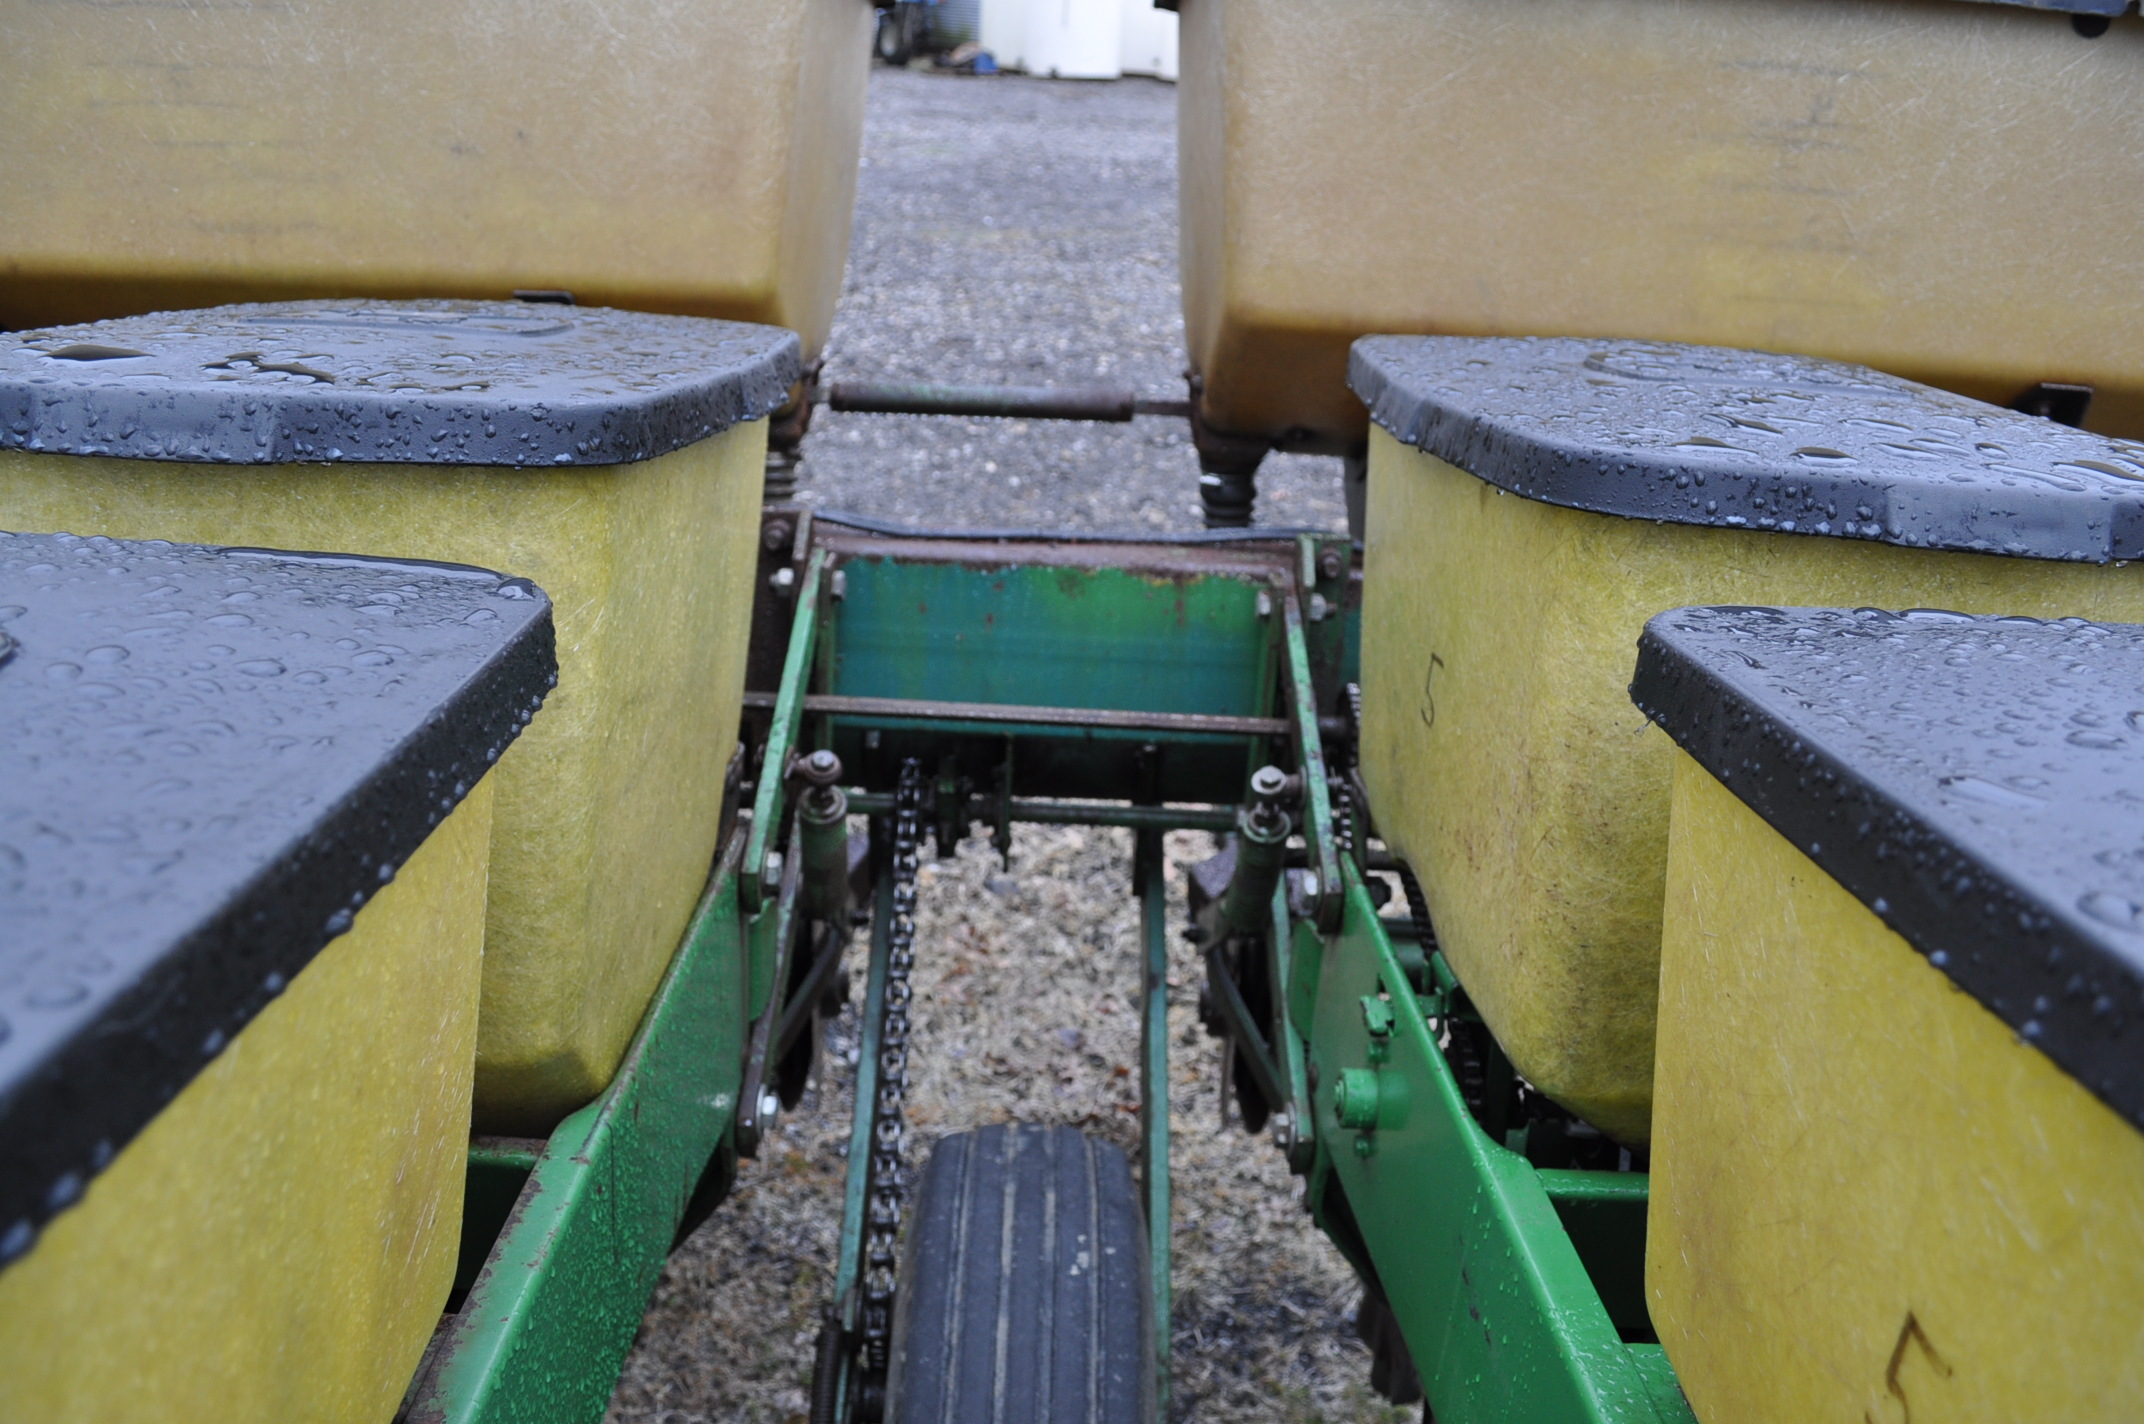 "John Deere 7000 corn planter, 6 row 30"", 2x2 dry fertilizer, no-till coulters, PP finger pickup - Image 10 of 11"